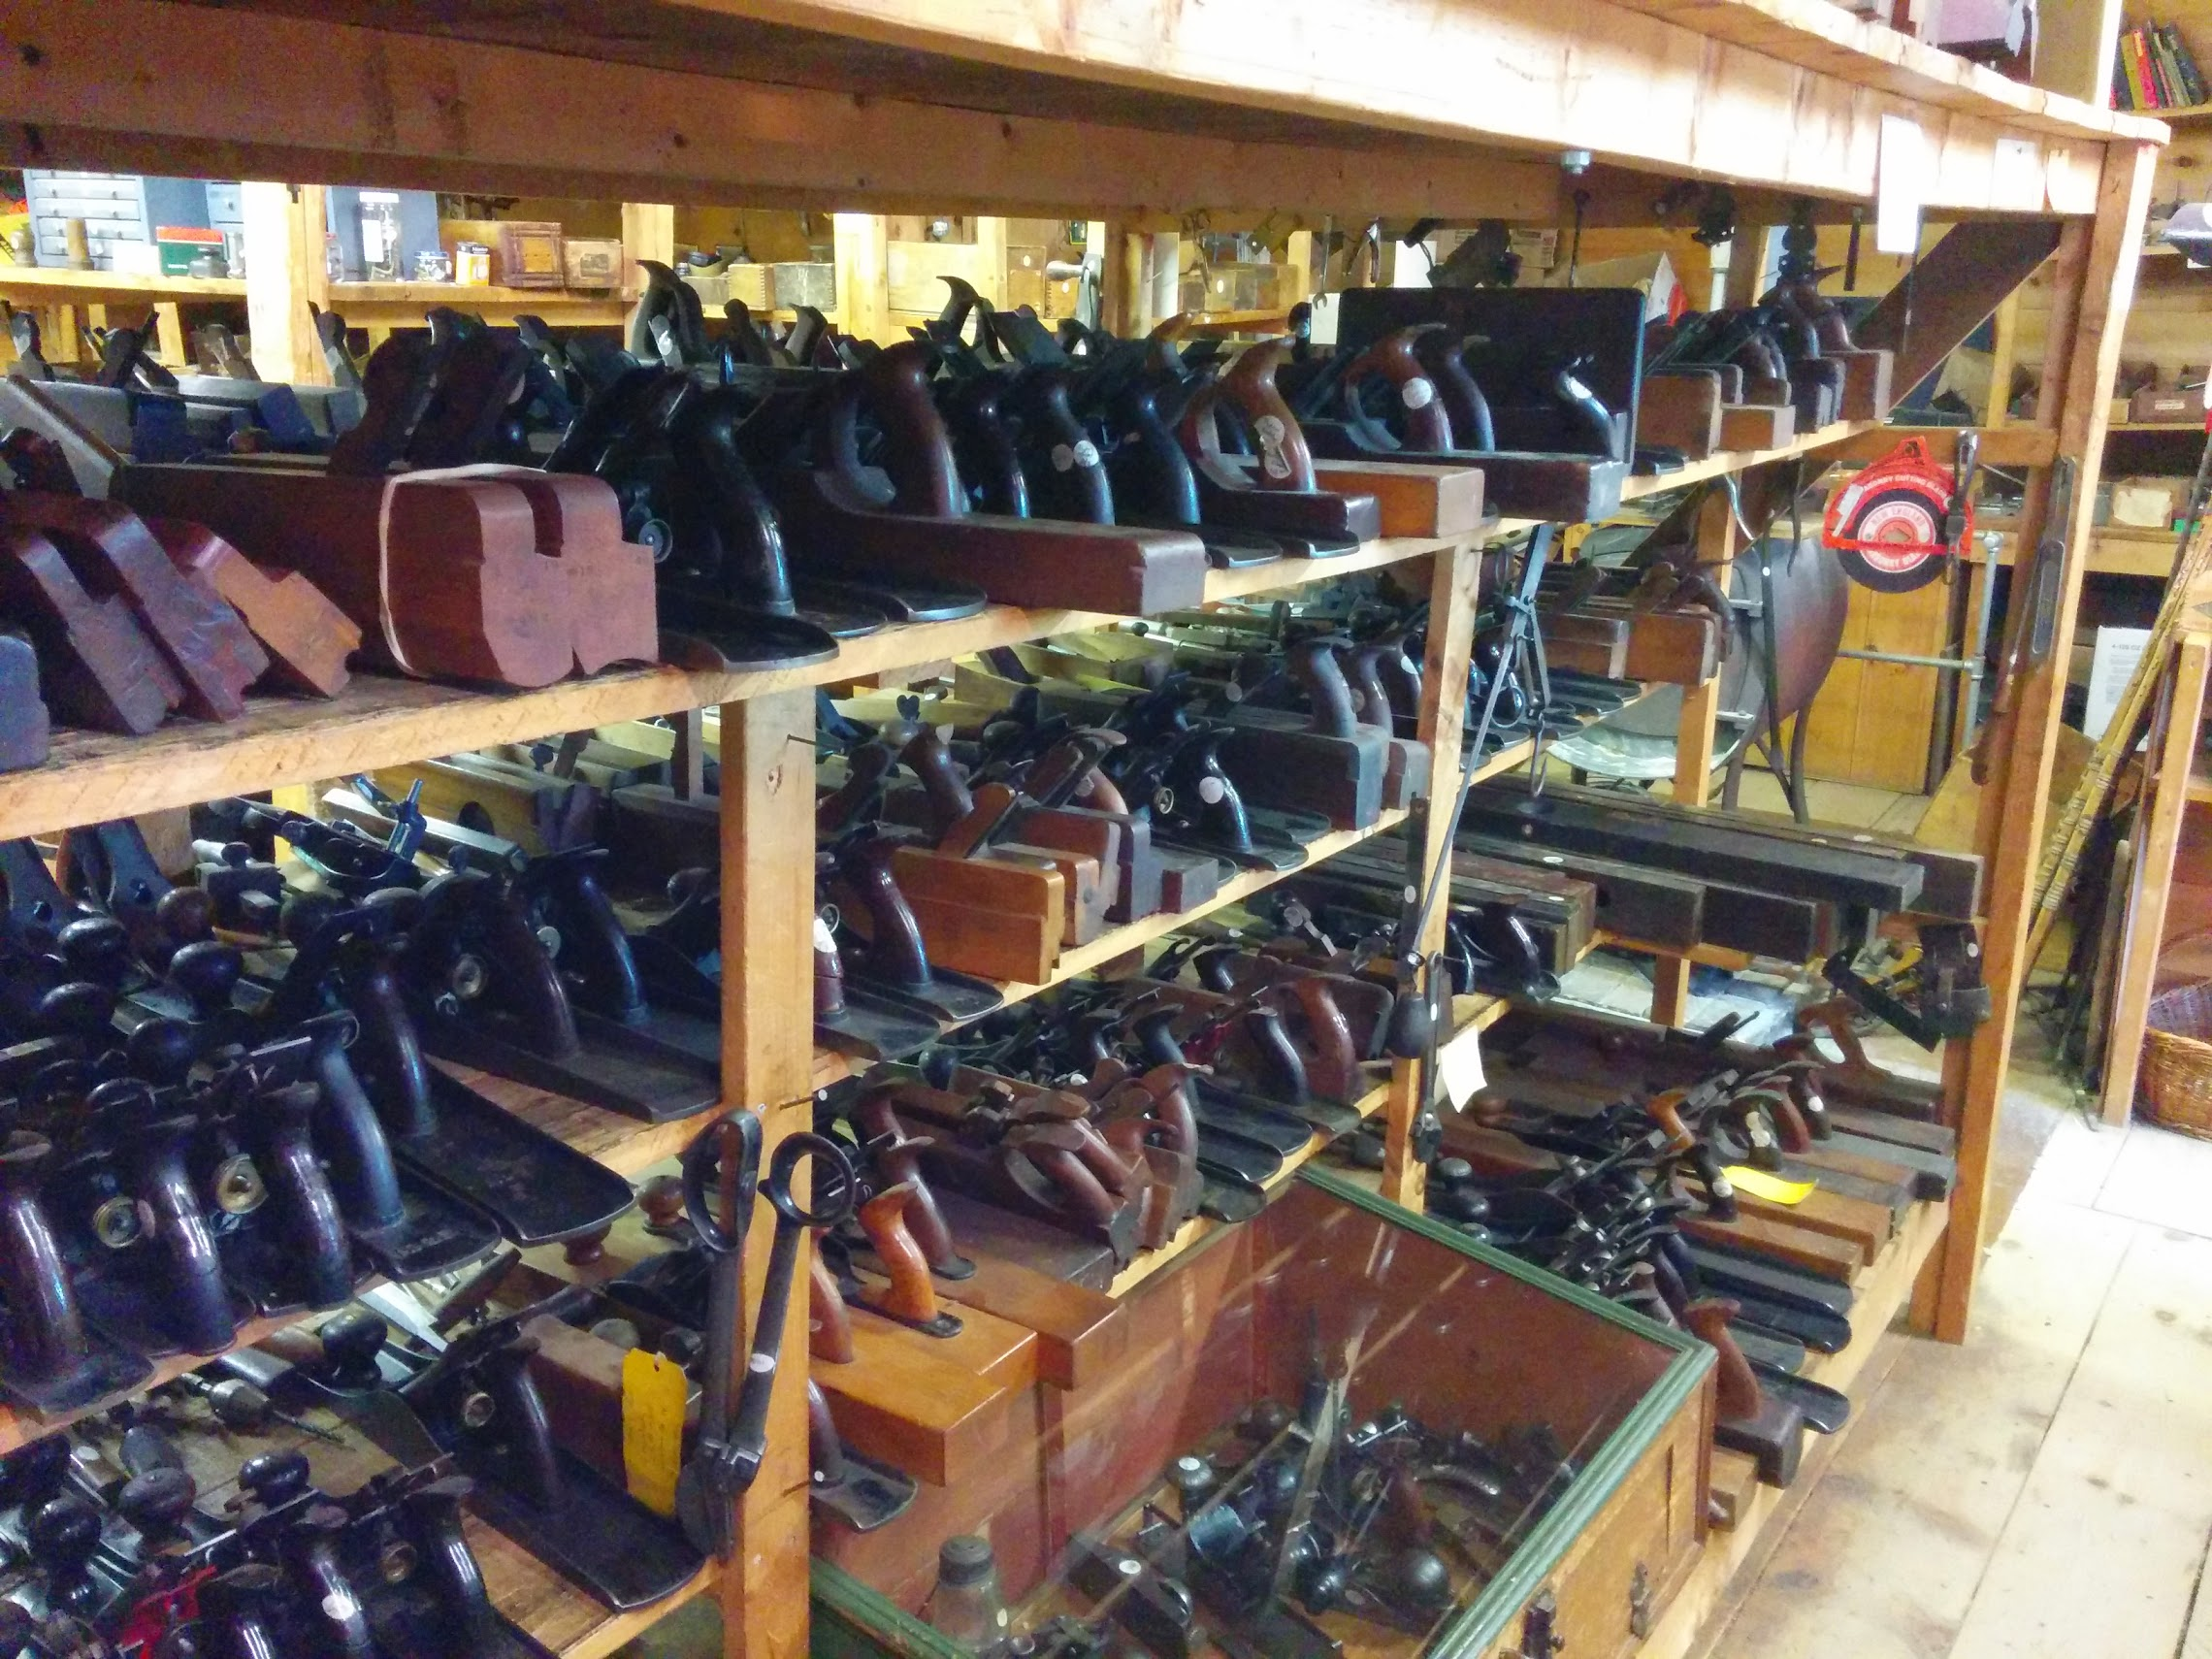 The Tool Barn in Maine. Makes you want to build a house using only hand tools, right?